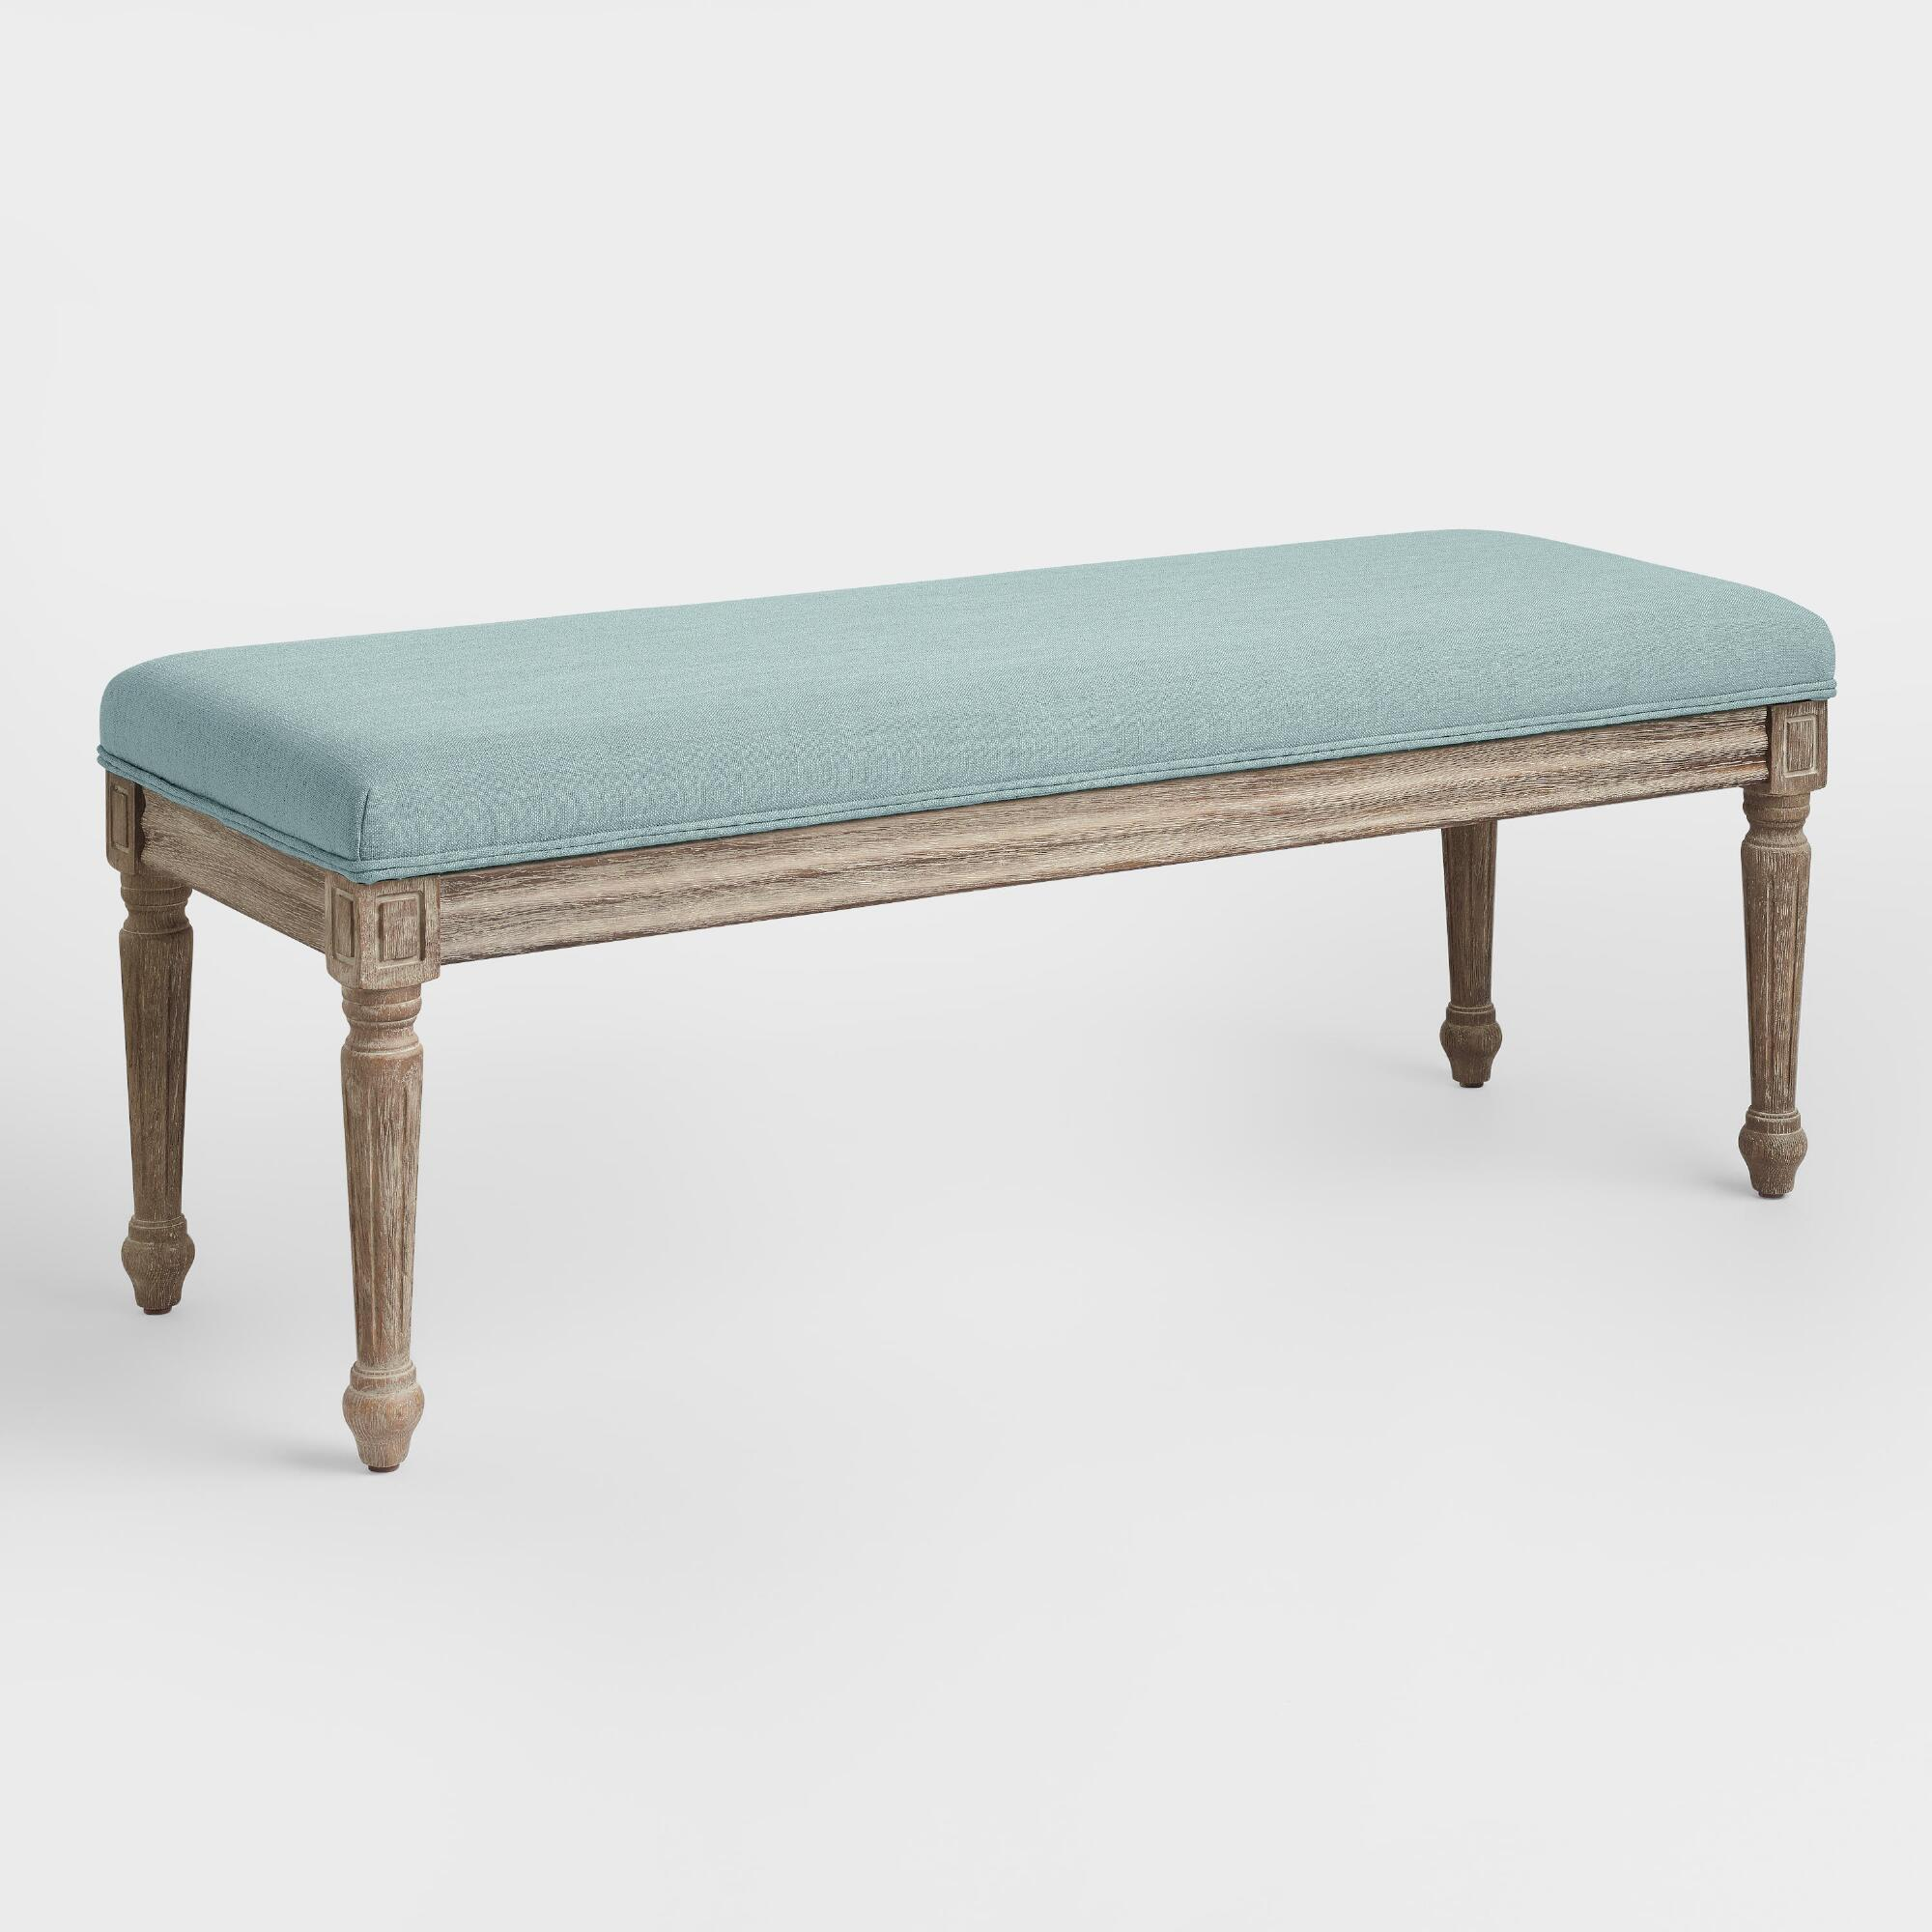 Blue linen paige upholstered dining bench world market Padded benches